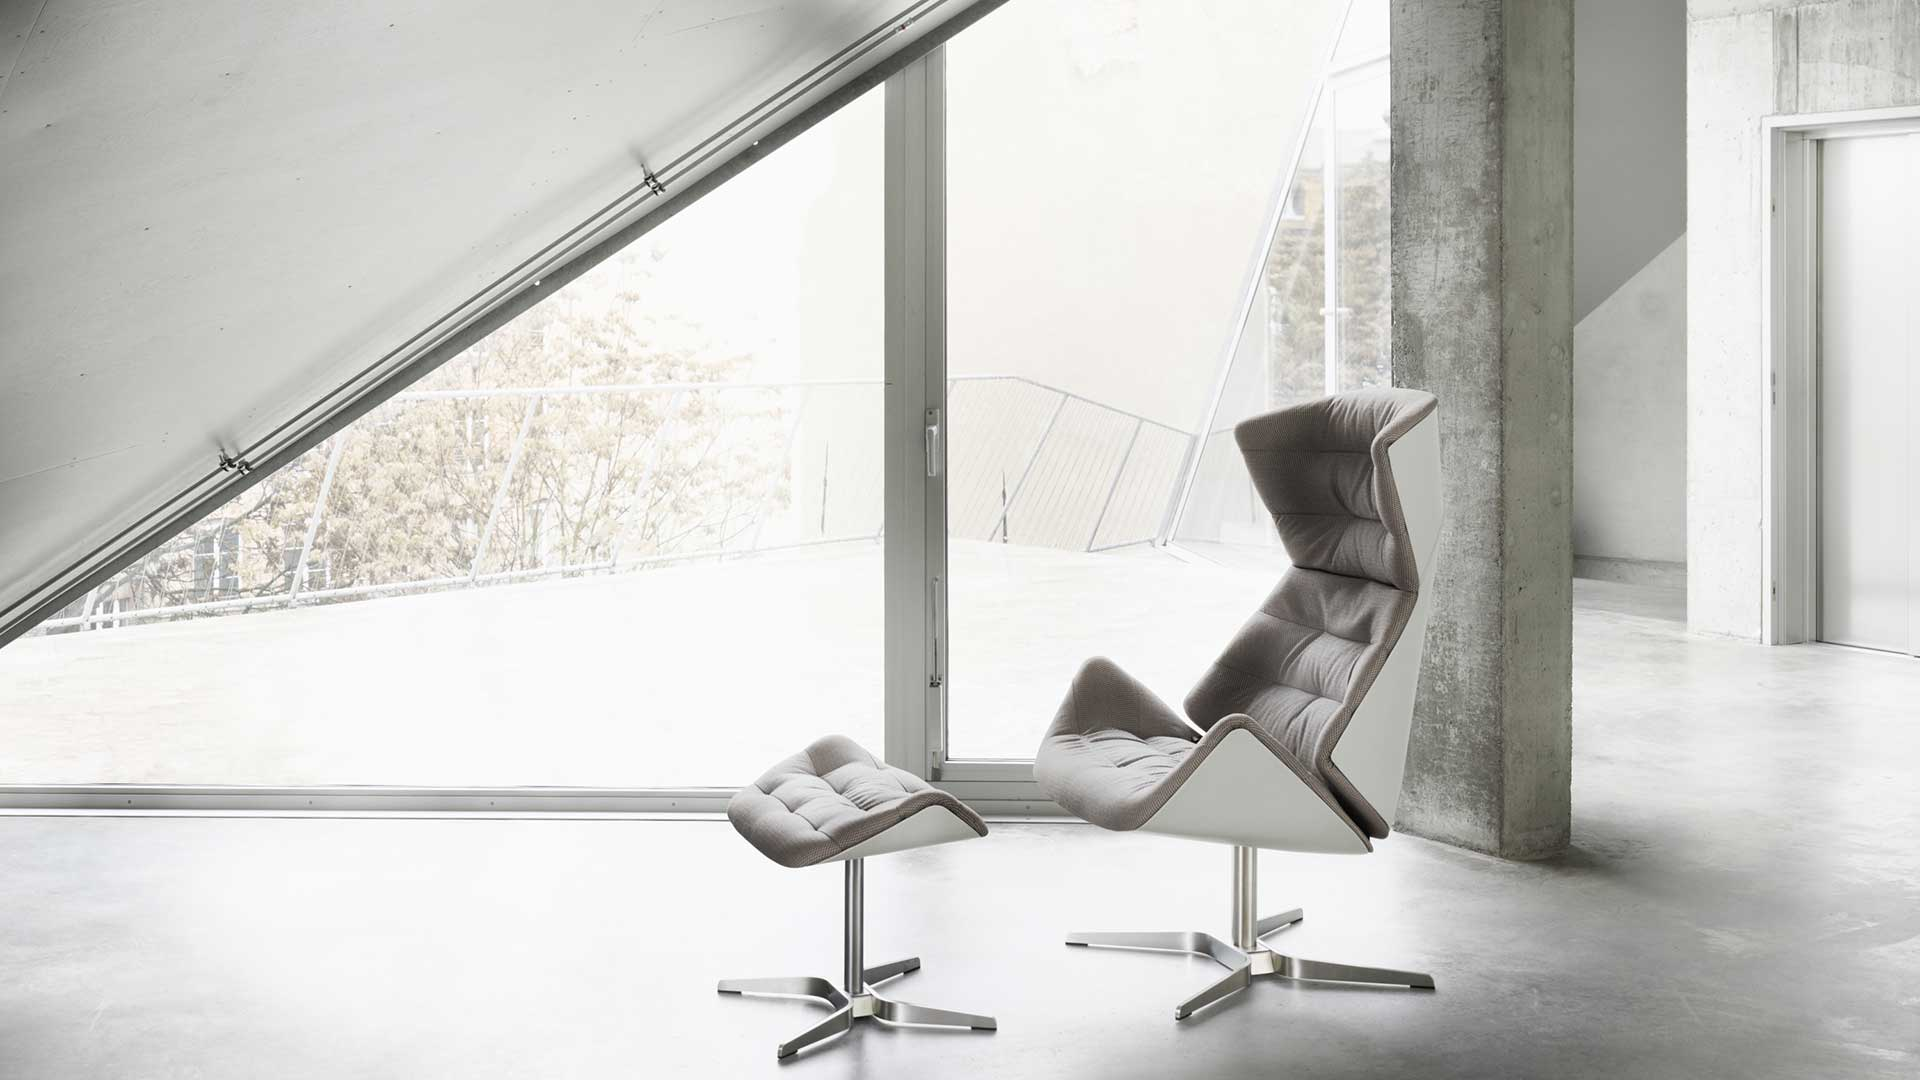 Lounge-sessel 808 Thonet 808 Aktion Sessel Hocker Felix Thonet Shop